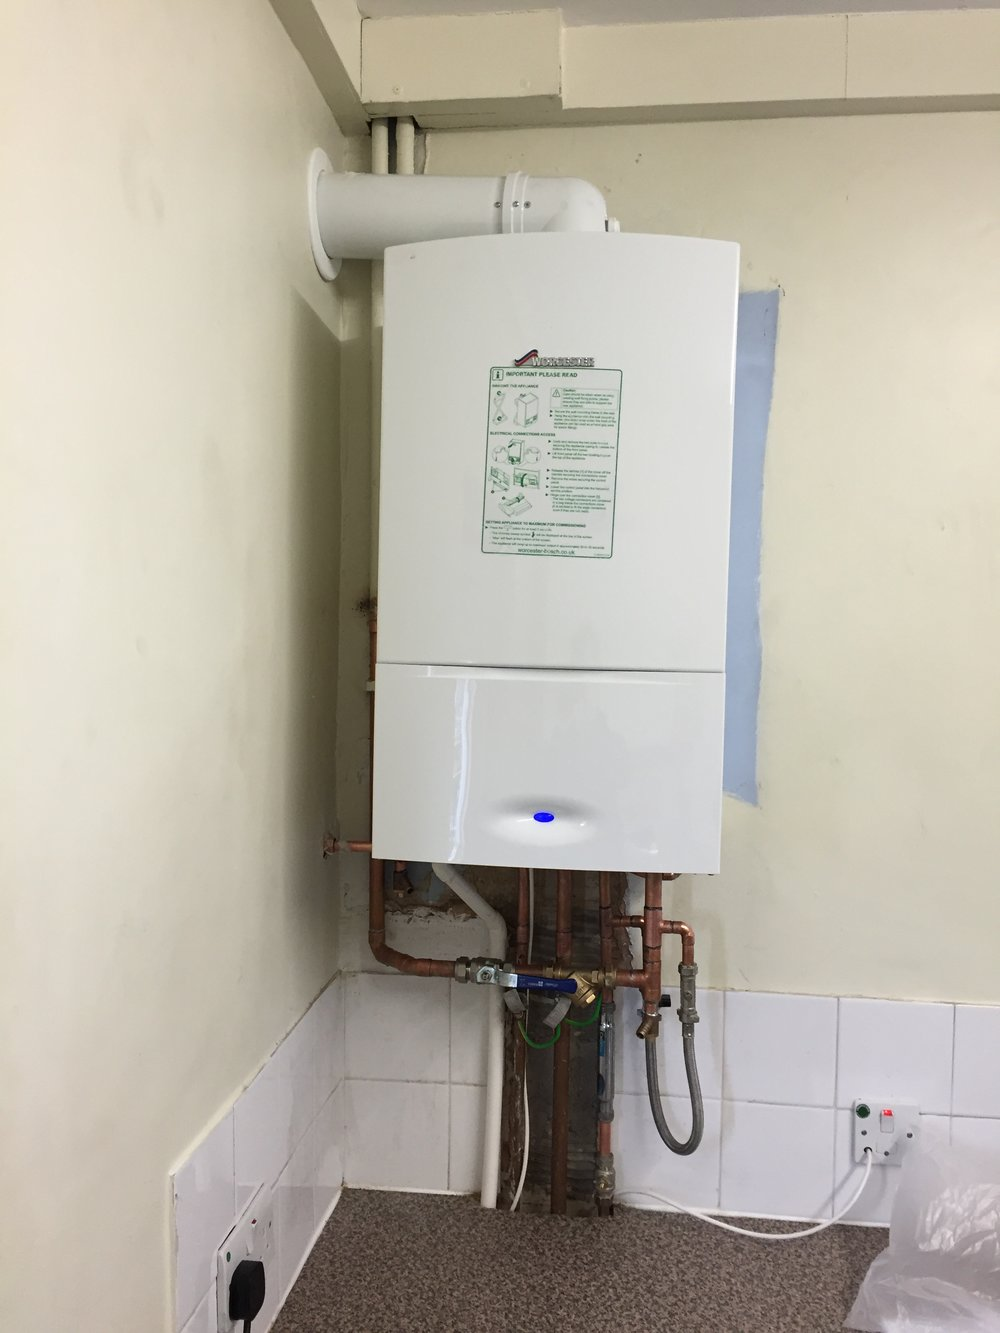 Worcestor boiler to replace faulty existing boiler (2).JPG